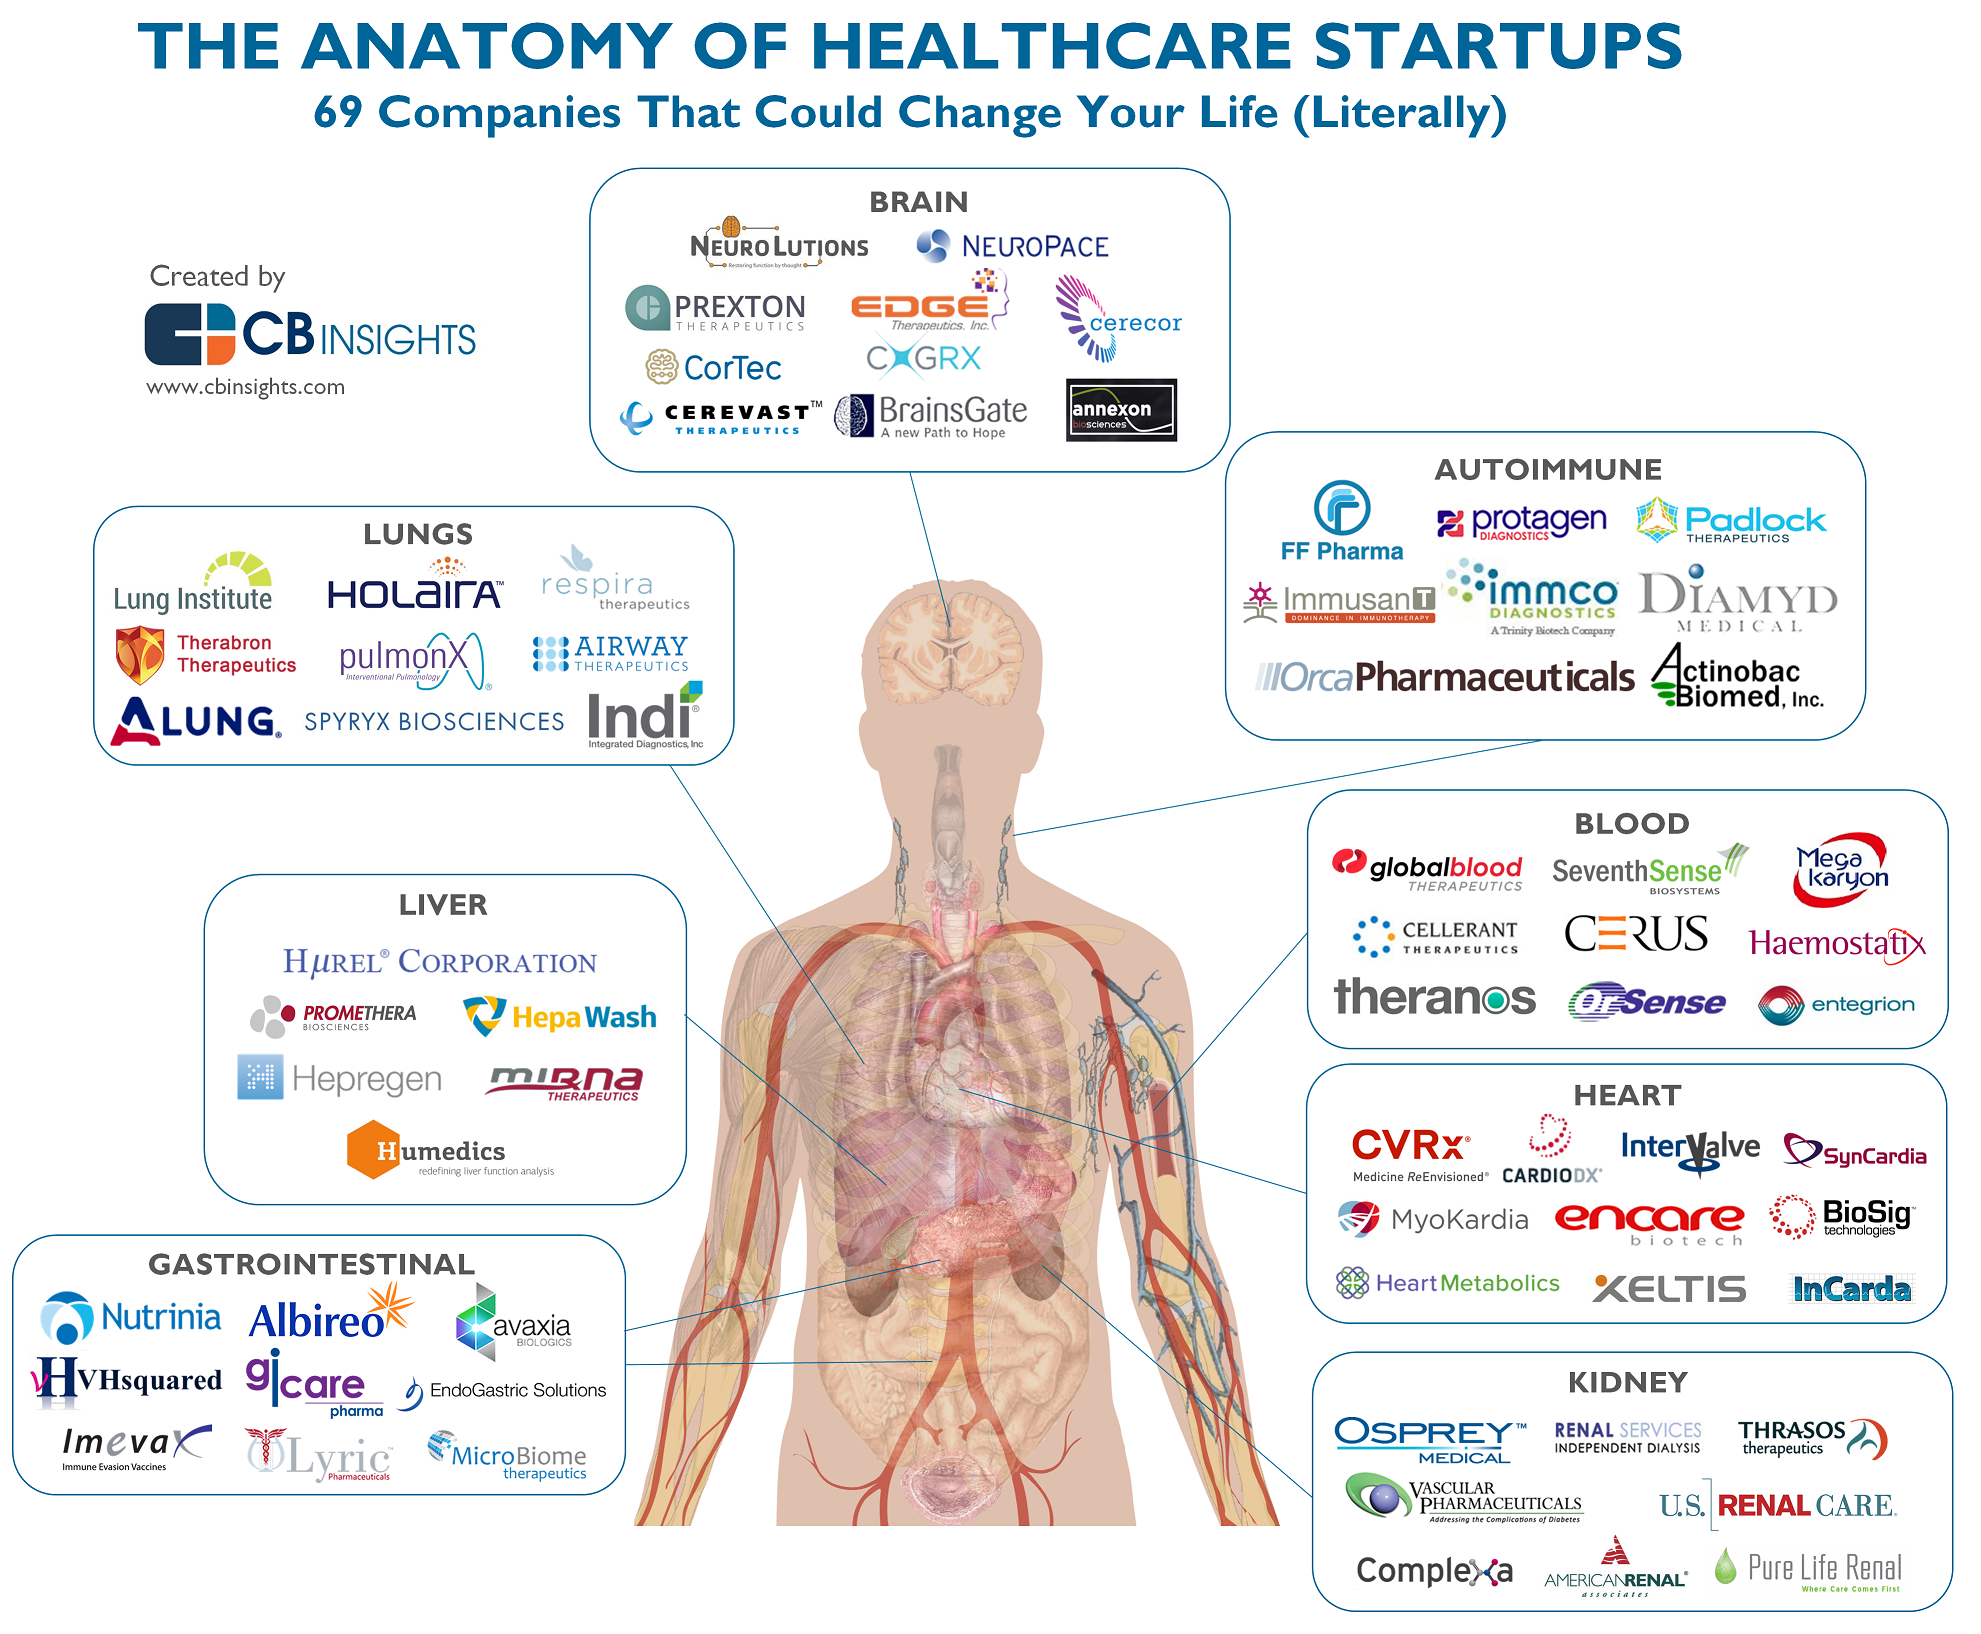 Meet 5 Japanese Healthcare Startups Making a Difference